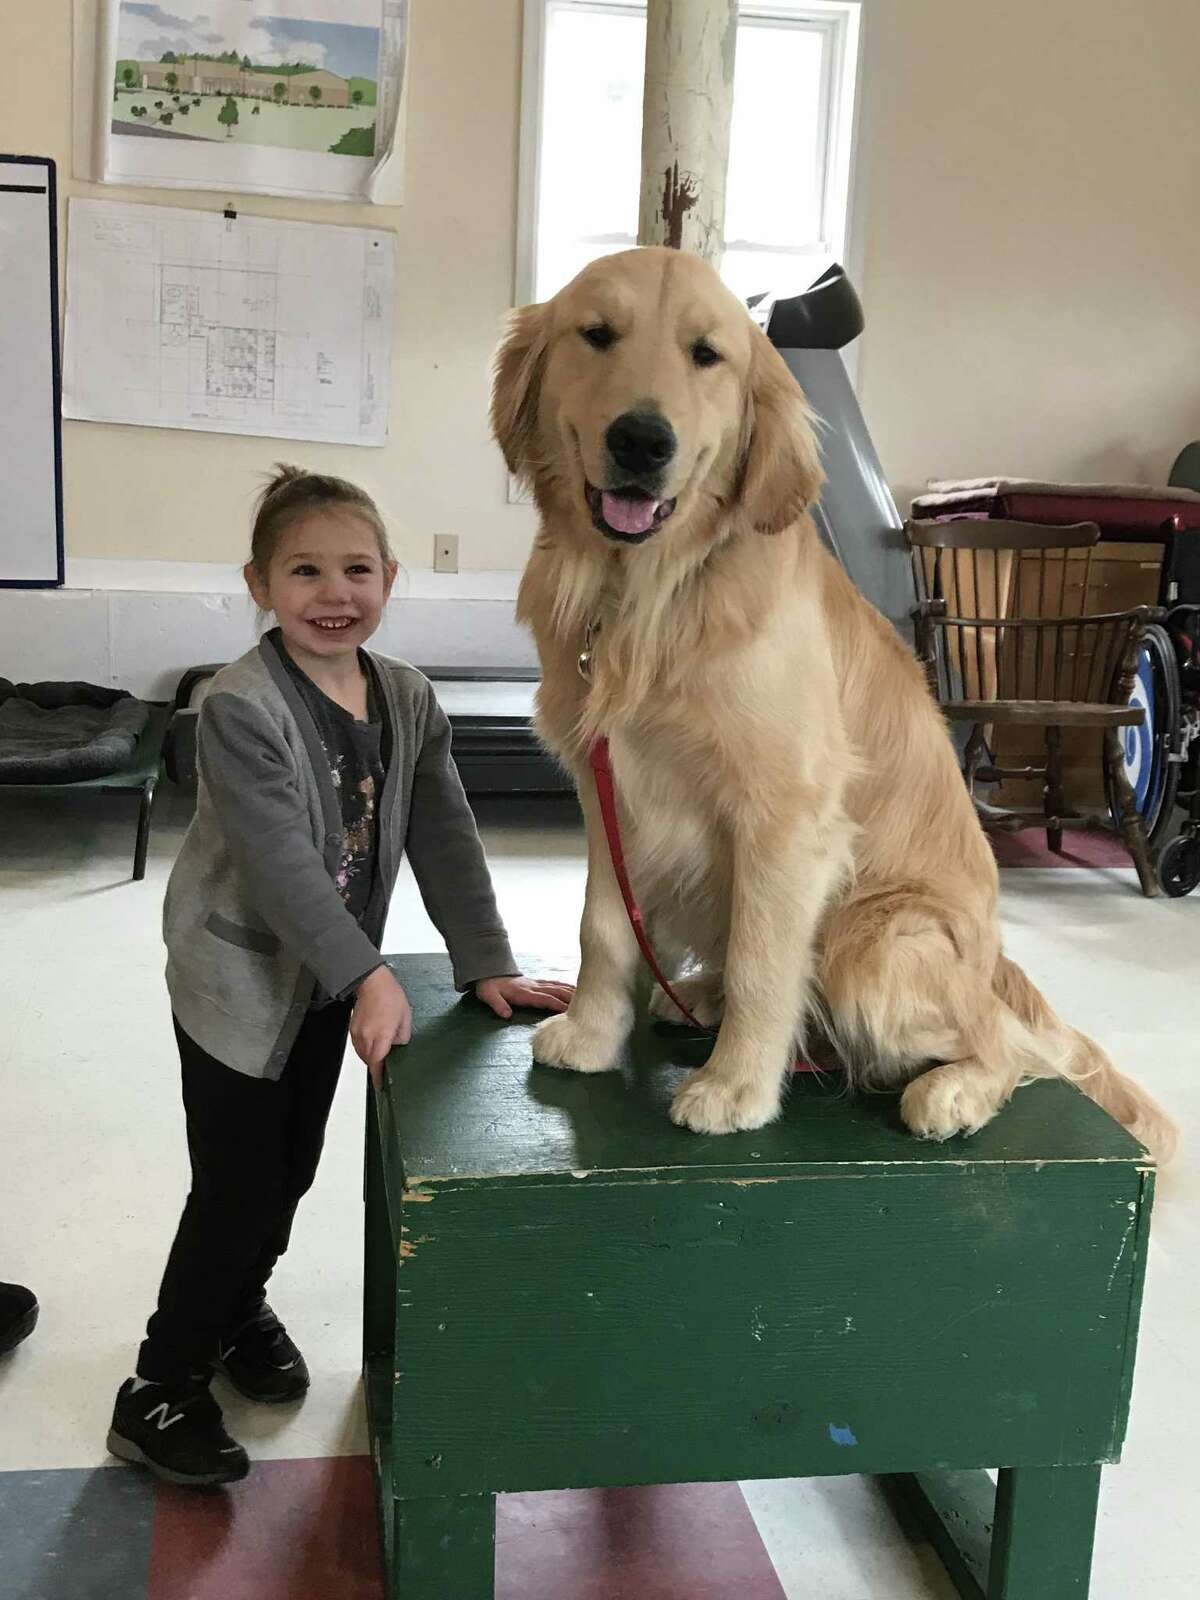 Four new pairs of clients and their service dogs will graduate from a two-week team training session on Wednesday when Educated Canines Assisting with Disabilities members officially cut the ribbon on its new state-of-the-art Canine Education and Wellness Center at 149 Newfield Road in Winsted.